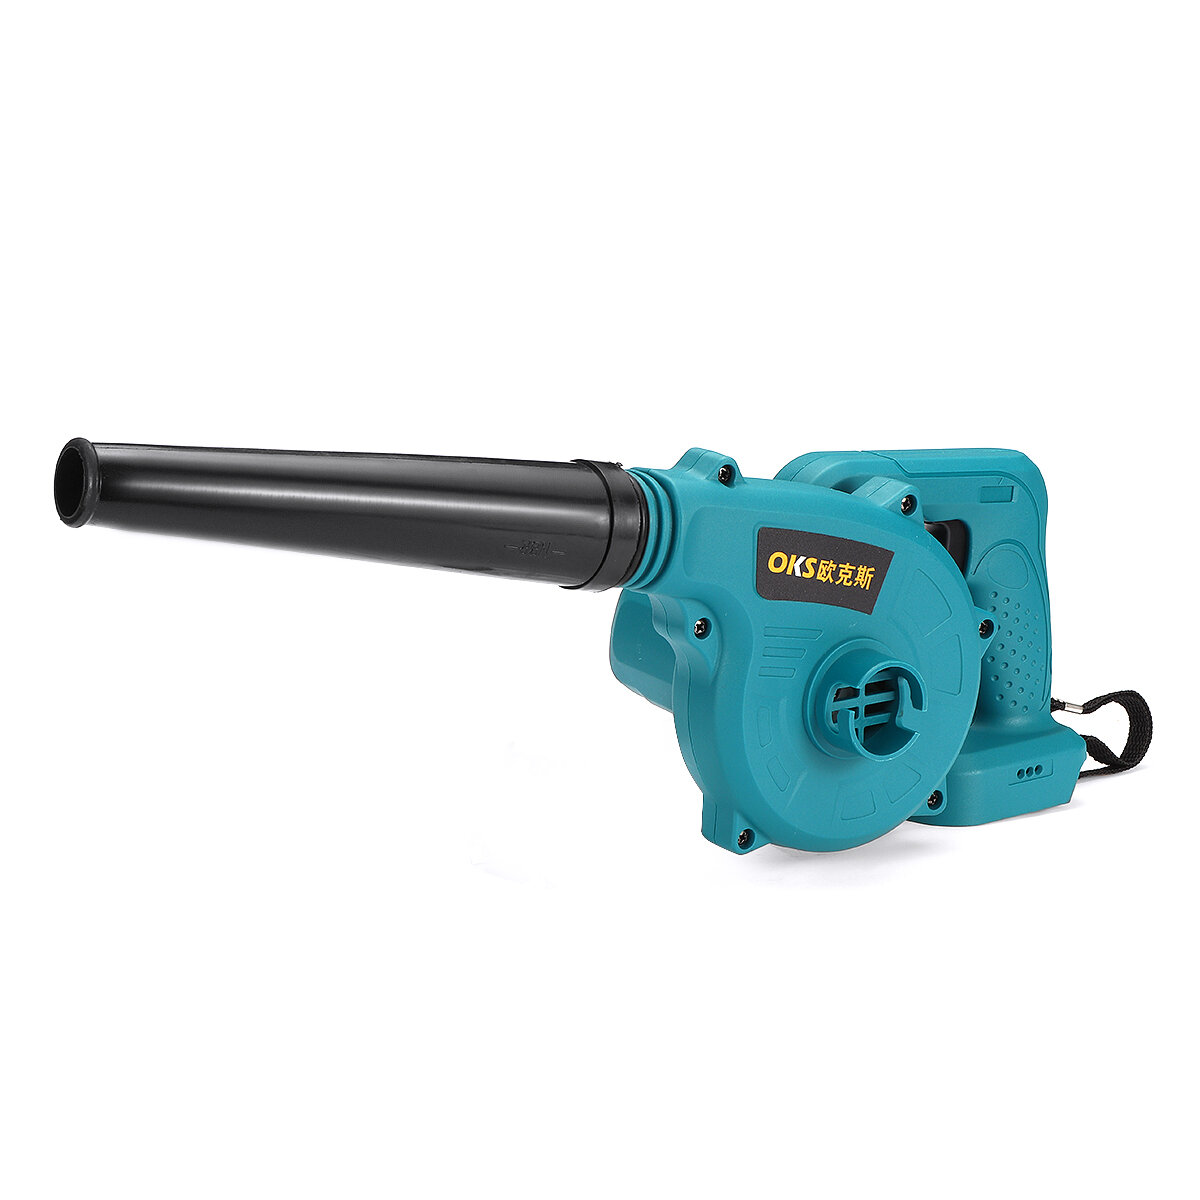 0-18000r/minElectric Air Blower Vacuum Cleaner 3.6m³/min Blow-suction Cordless Vacuum Suction Blower Tool For Makita 18V Li-ion Battery